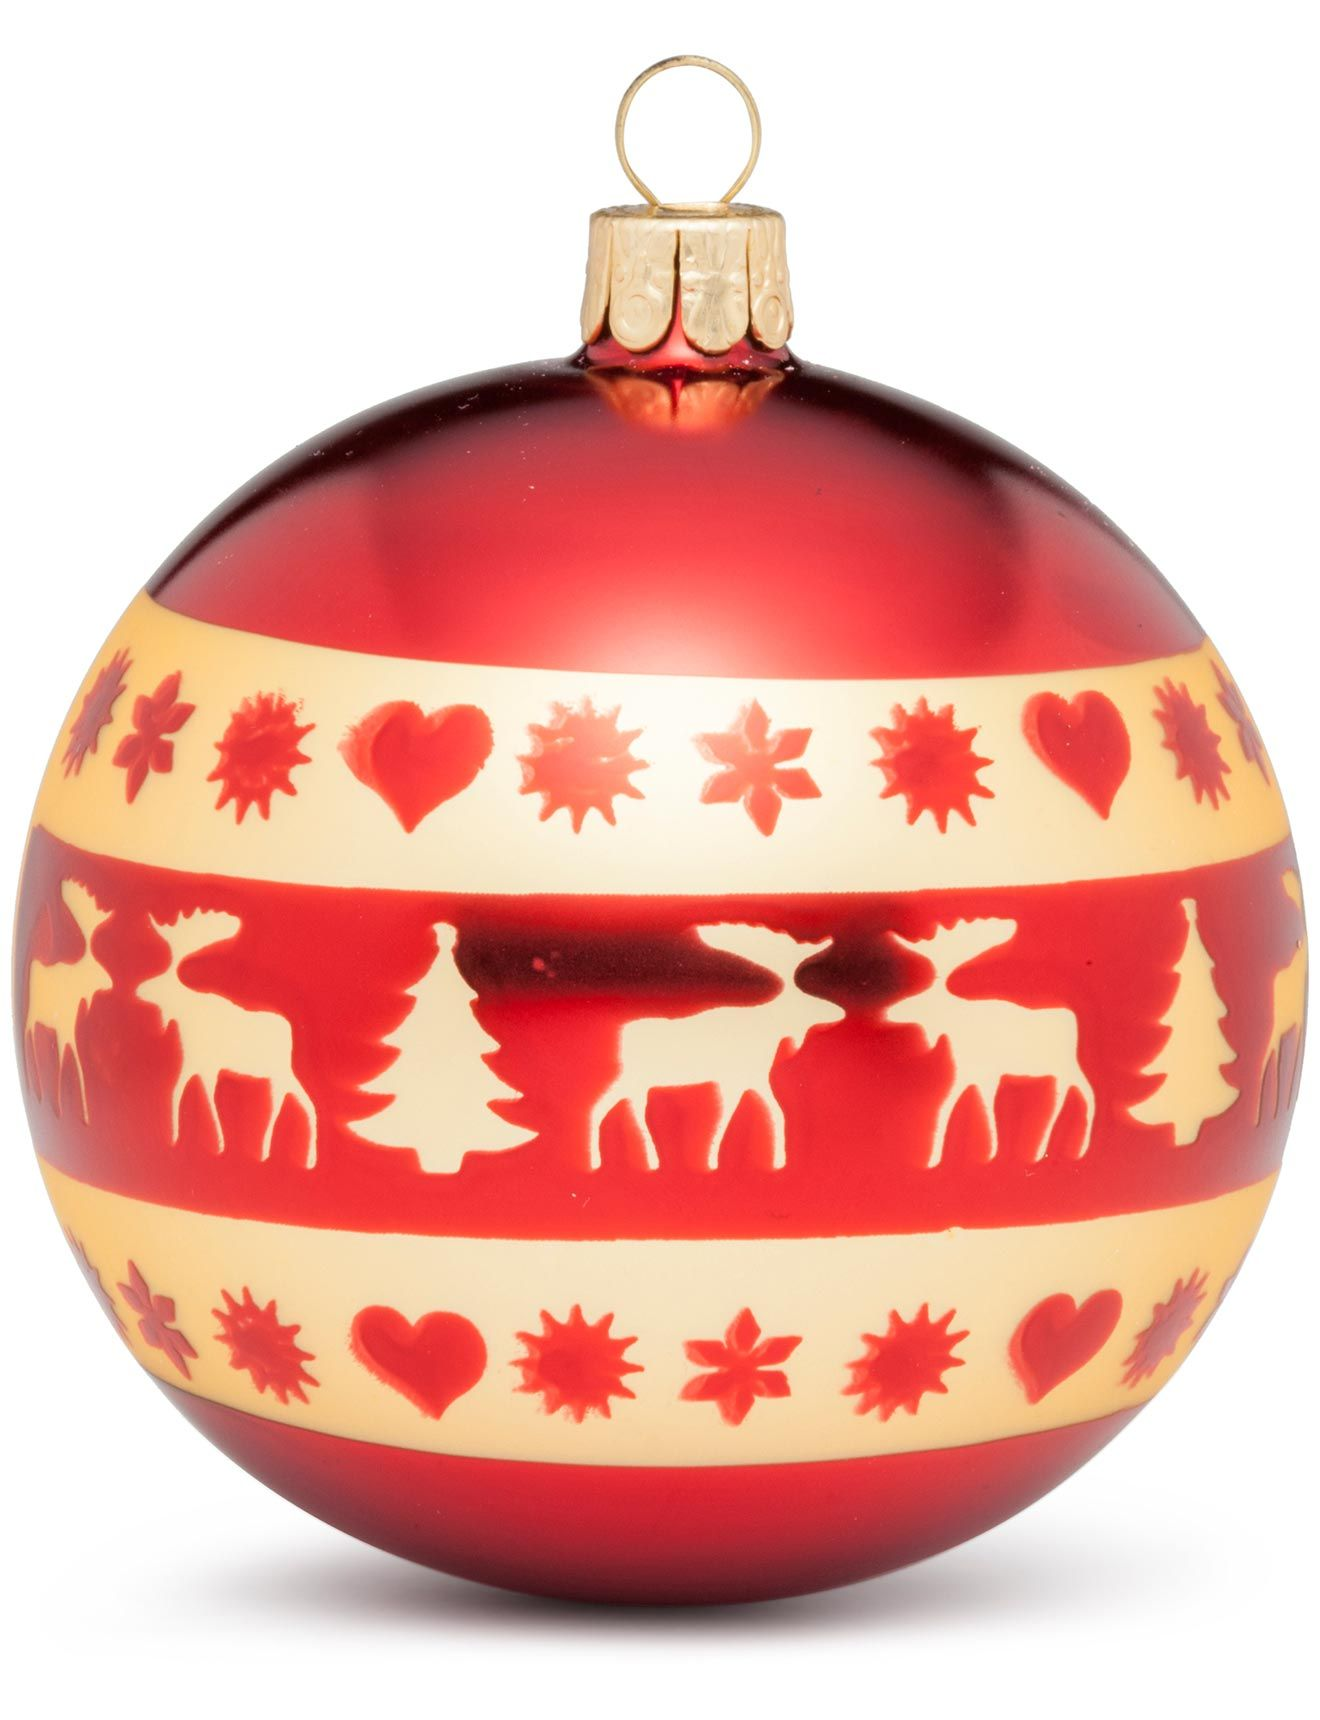 Christmas Shop Nordic Icons Ornament 8Cm Bauble At David Jones